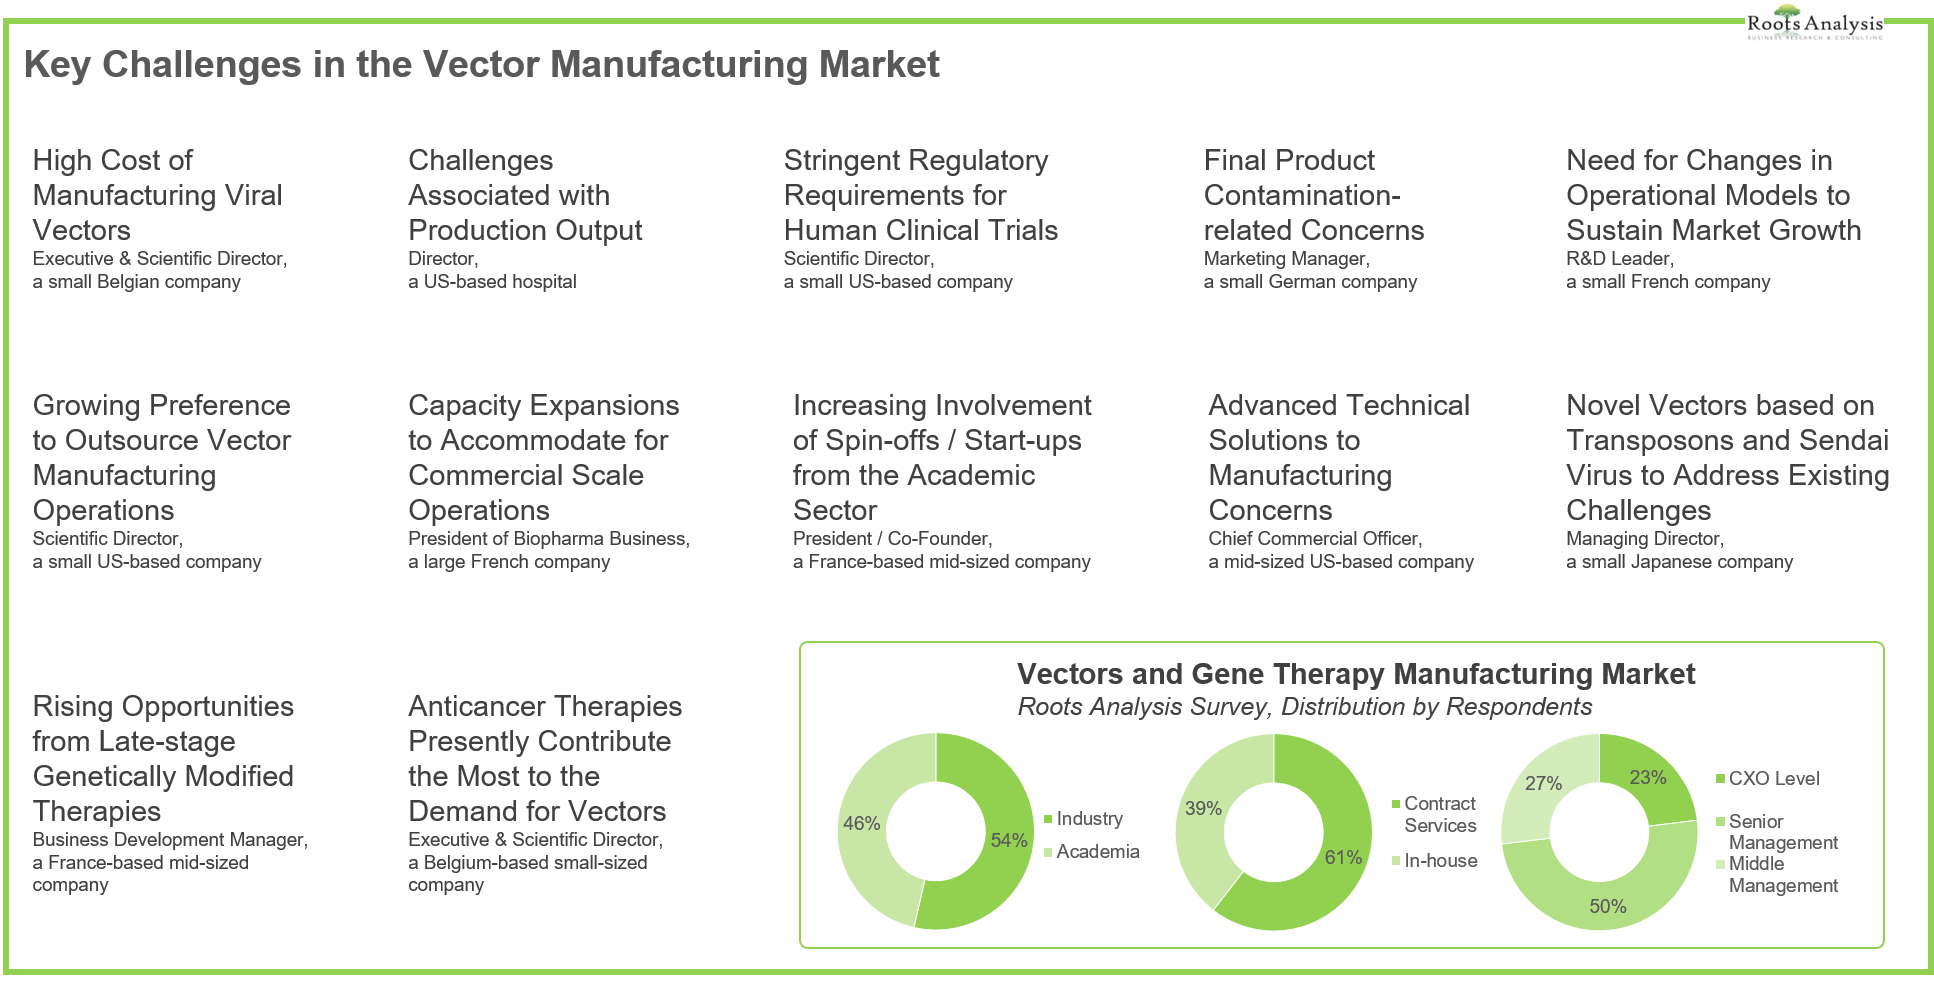 CEOs highlight the key issues and high manufacturing cost challenges associated with cell and gene therapies